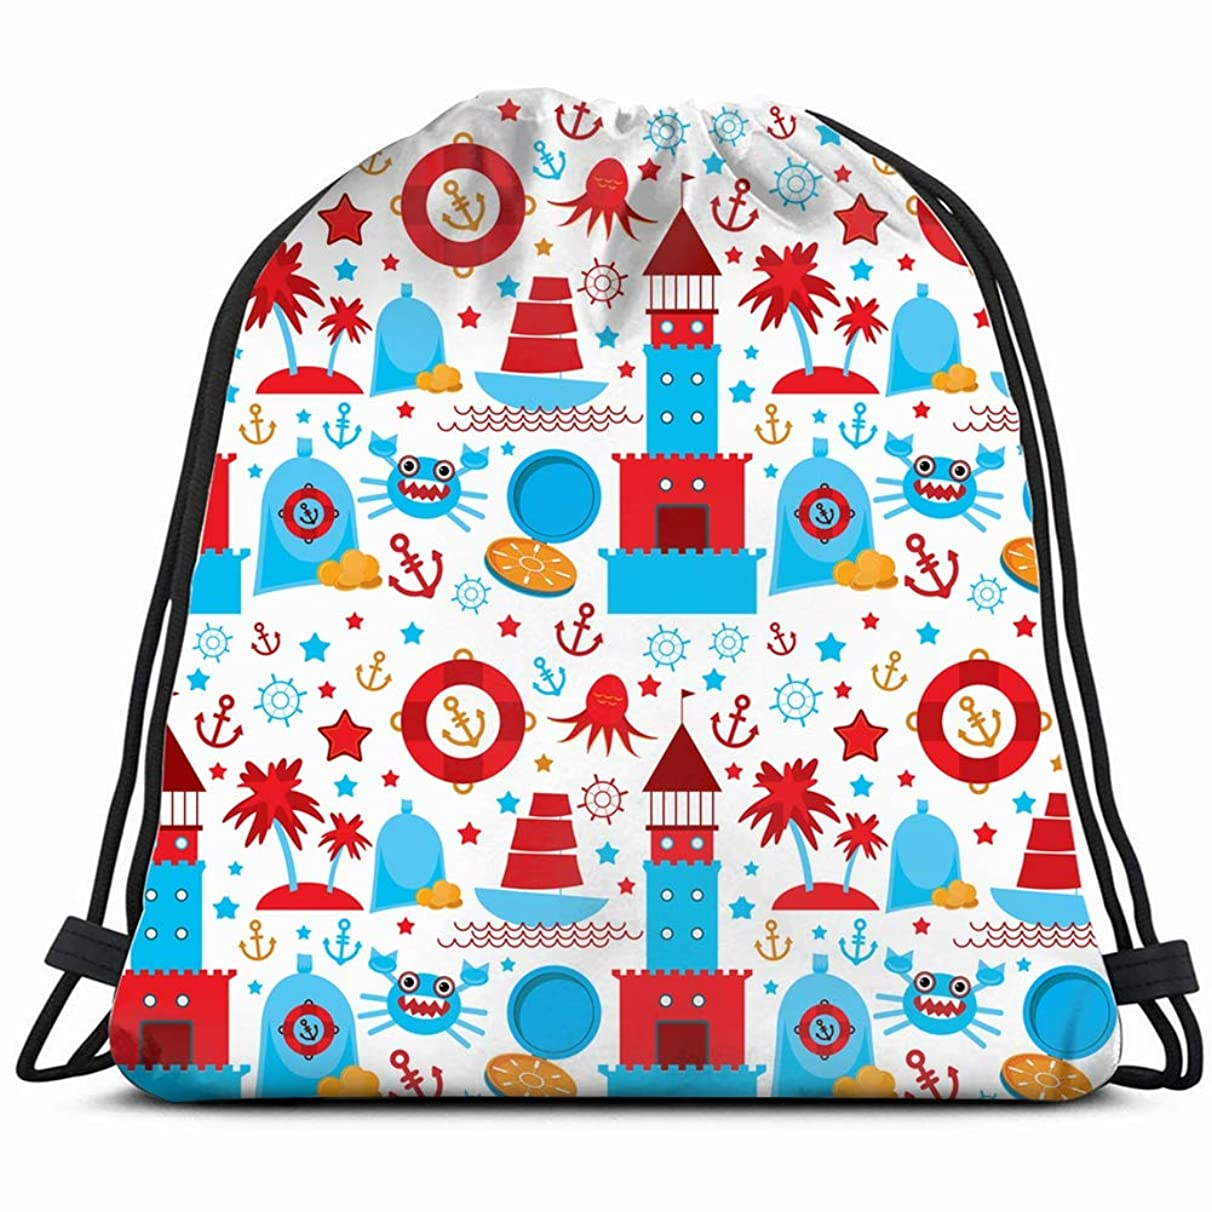 sea icons on white vintage Drawstring Backpack Gym Sack Lightweight Bag Water Resistant Gym Backpack for Women&Men for Sports,Travelling,Hiking,Camping,Shopping Yoga